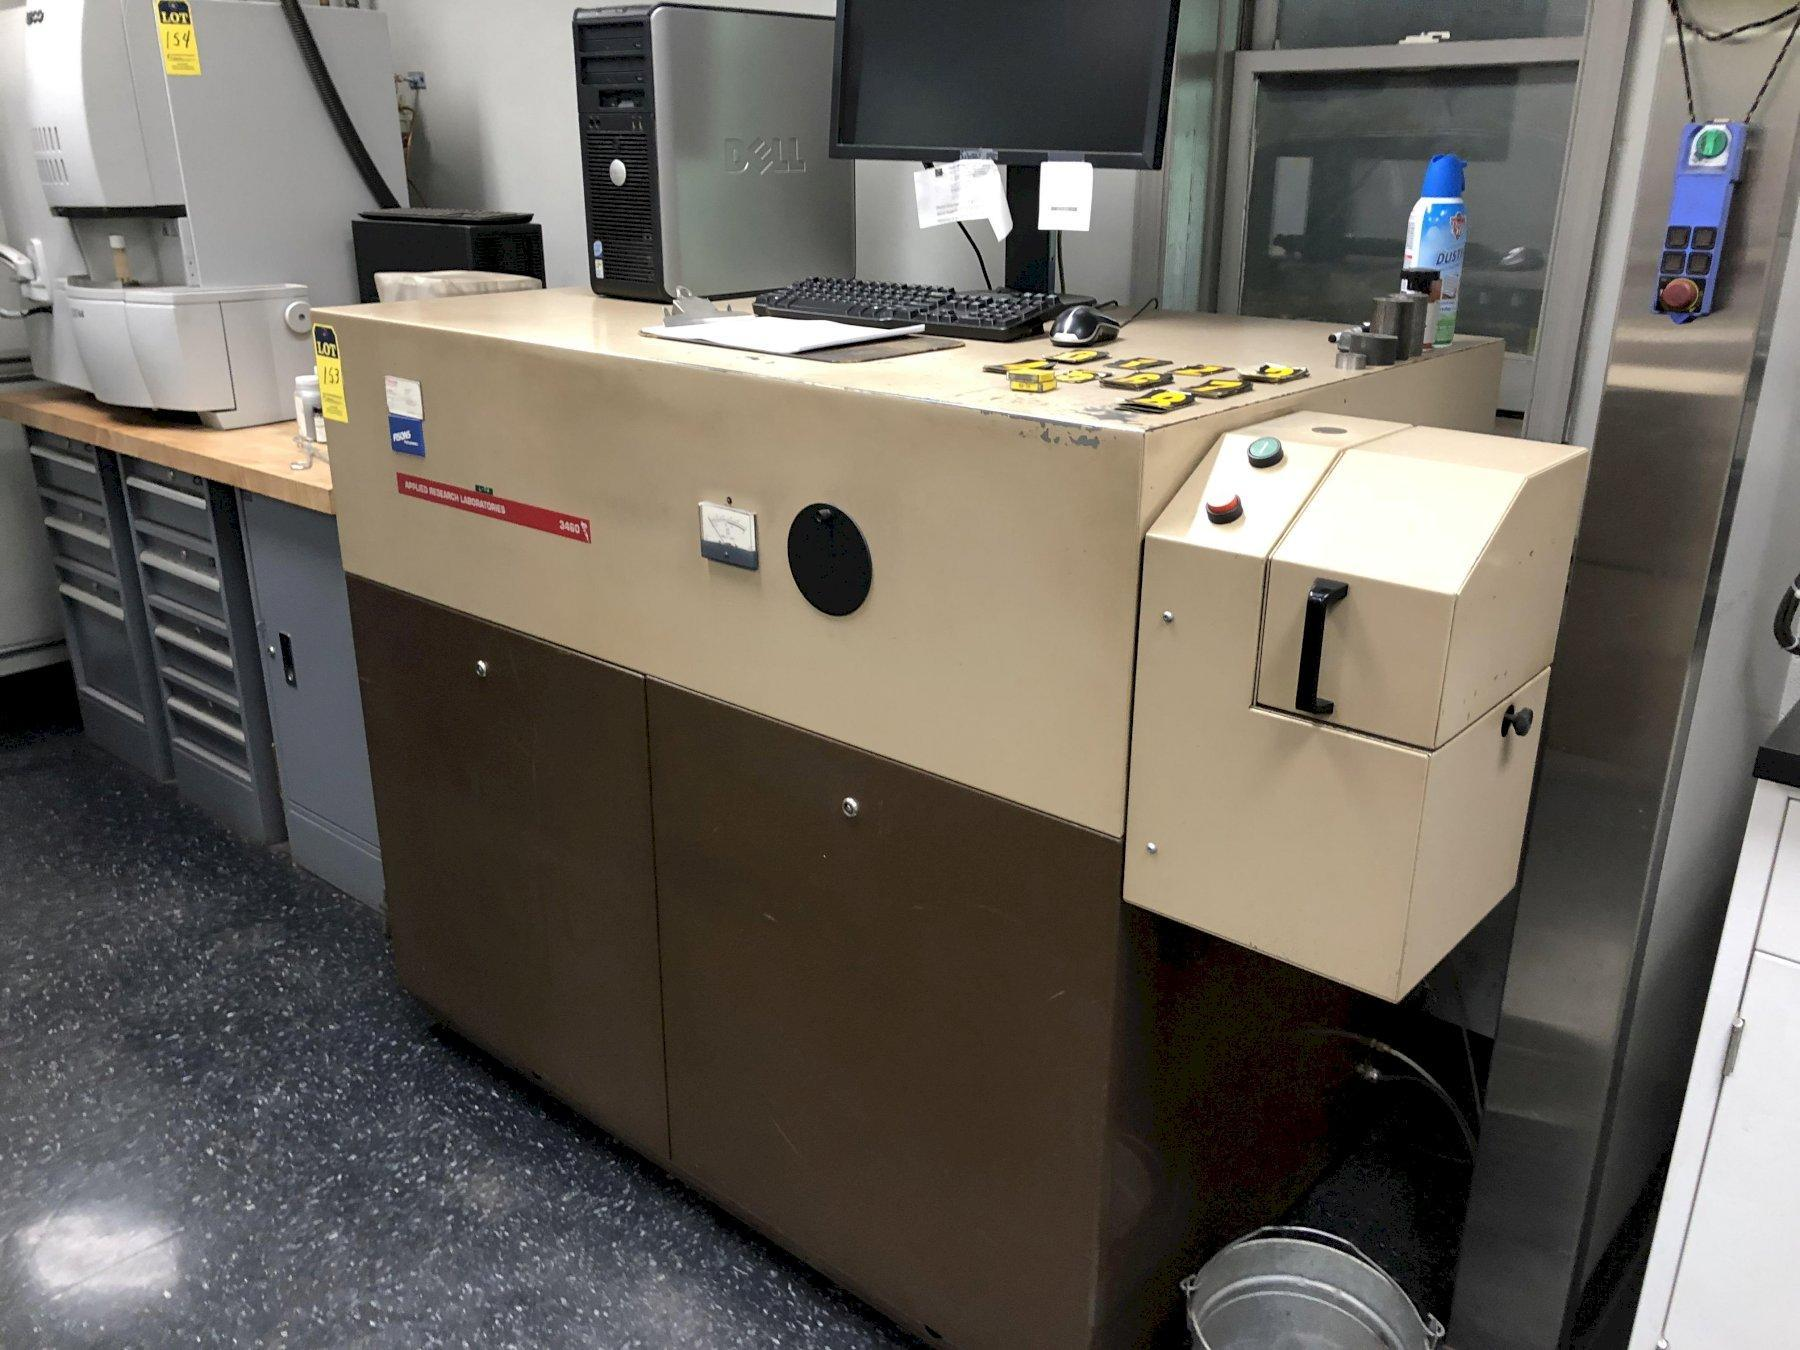 ARL Fisons model 3460oe steel base spectrometer s/n 1177, new vacuum 2014, 14 elements, : Phos, Sul, Selenium, Carbon, Silicon, Nickel, Chromium, Molybdenum, Manganese, Copper, Iron, Zinc, Aluminum an